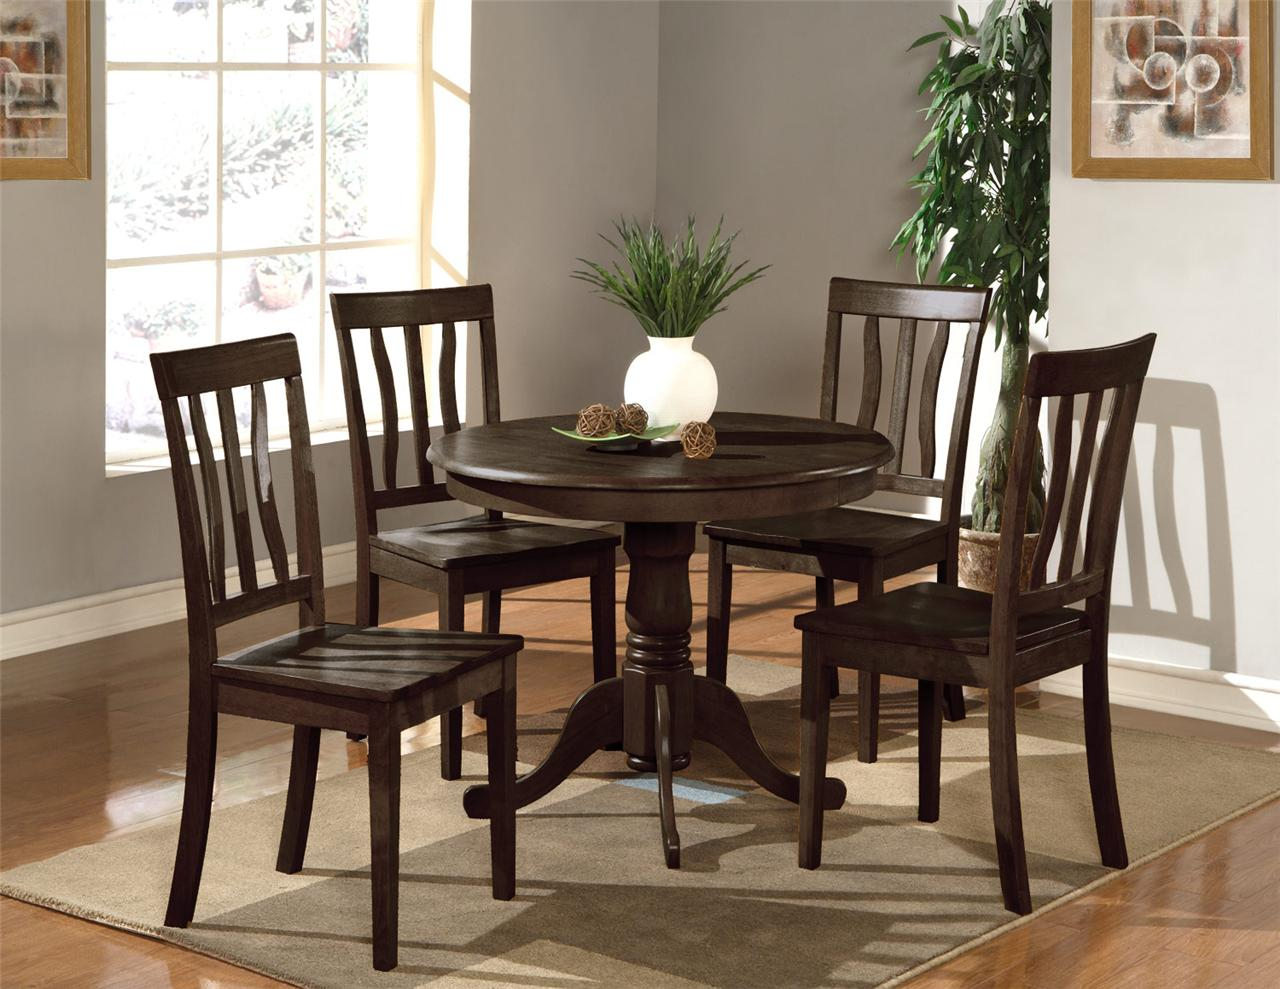 5PC DINETTE KITCHEN SET 36quot ROUND TABLE WITH 4 WOOD SEAT  : 555016744o from www.ebay.com size 1280 x 989 jpeg 155kB